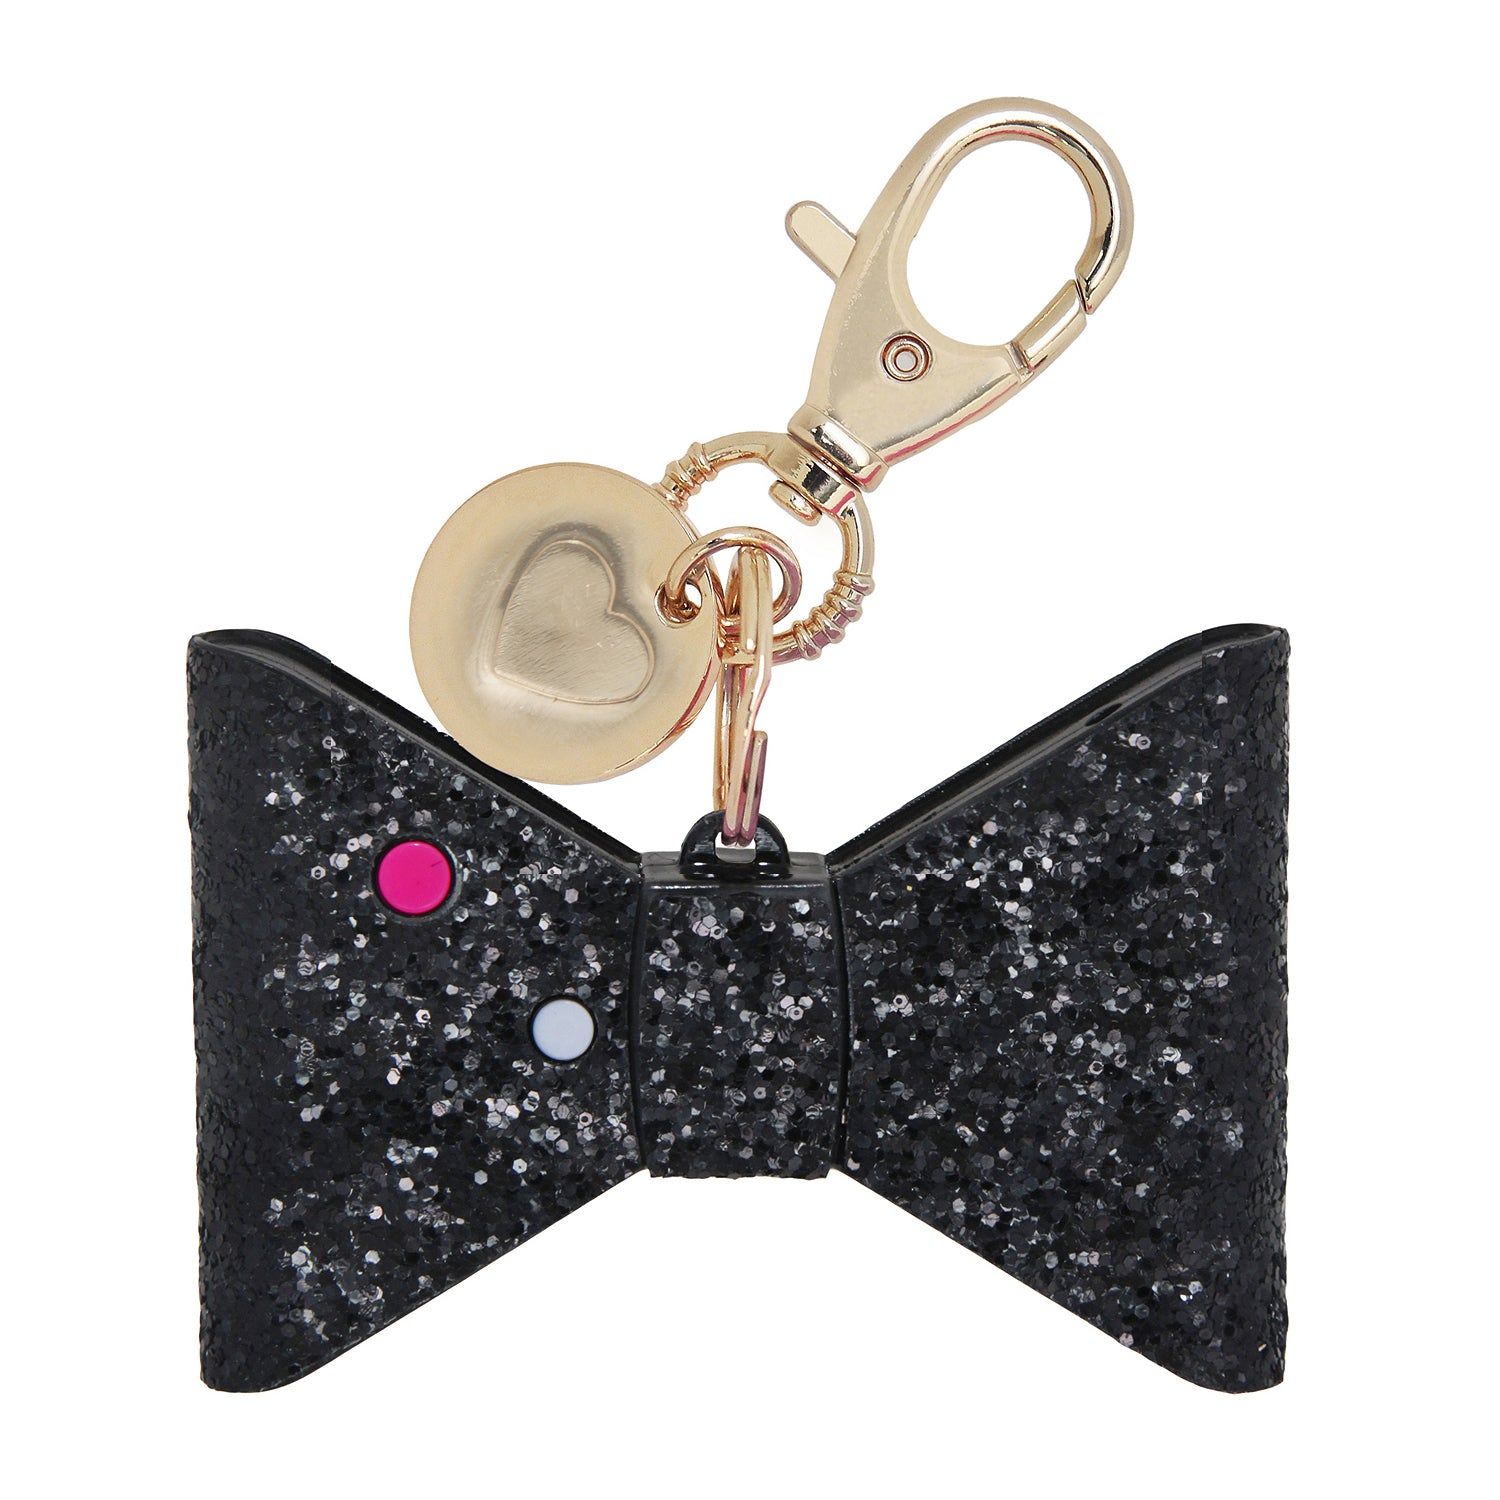 Personal Security Alarm - Glitter Bow (Black BACK)